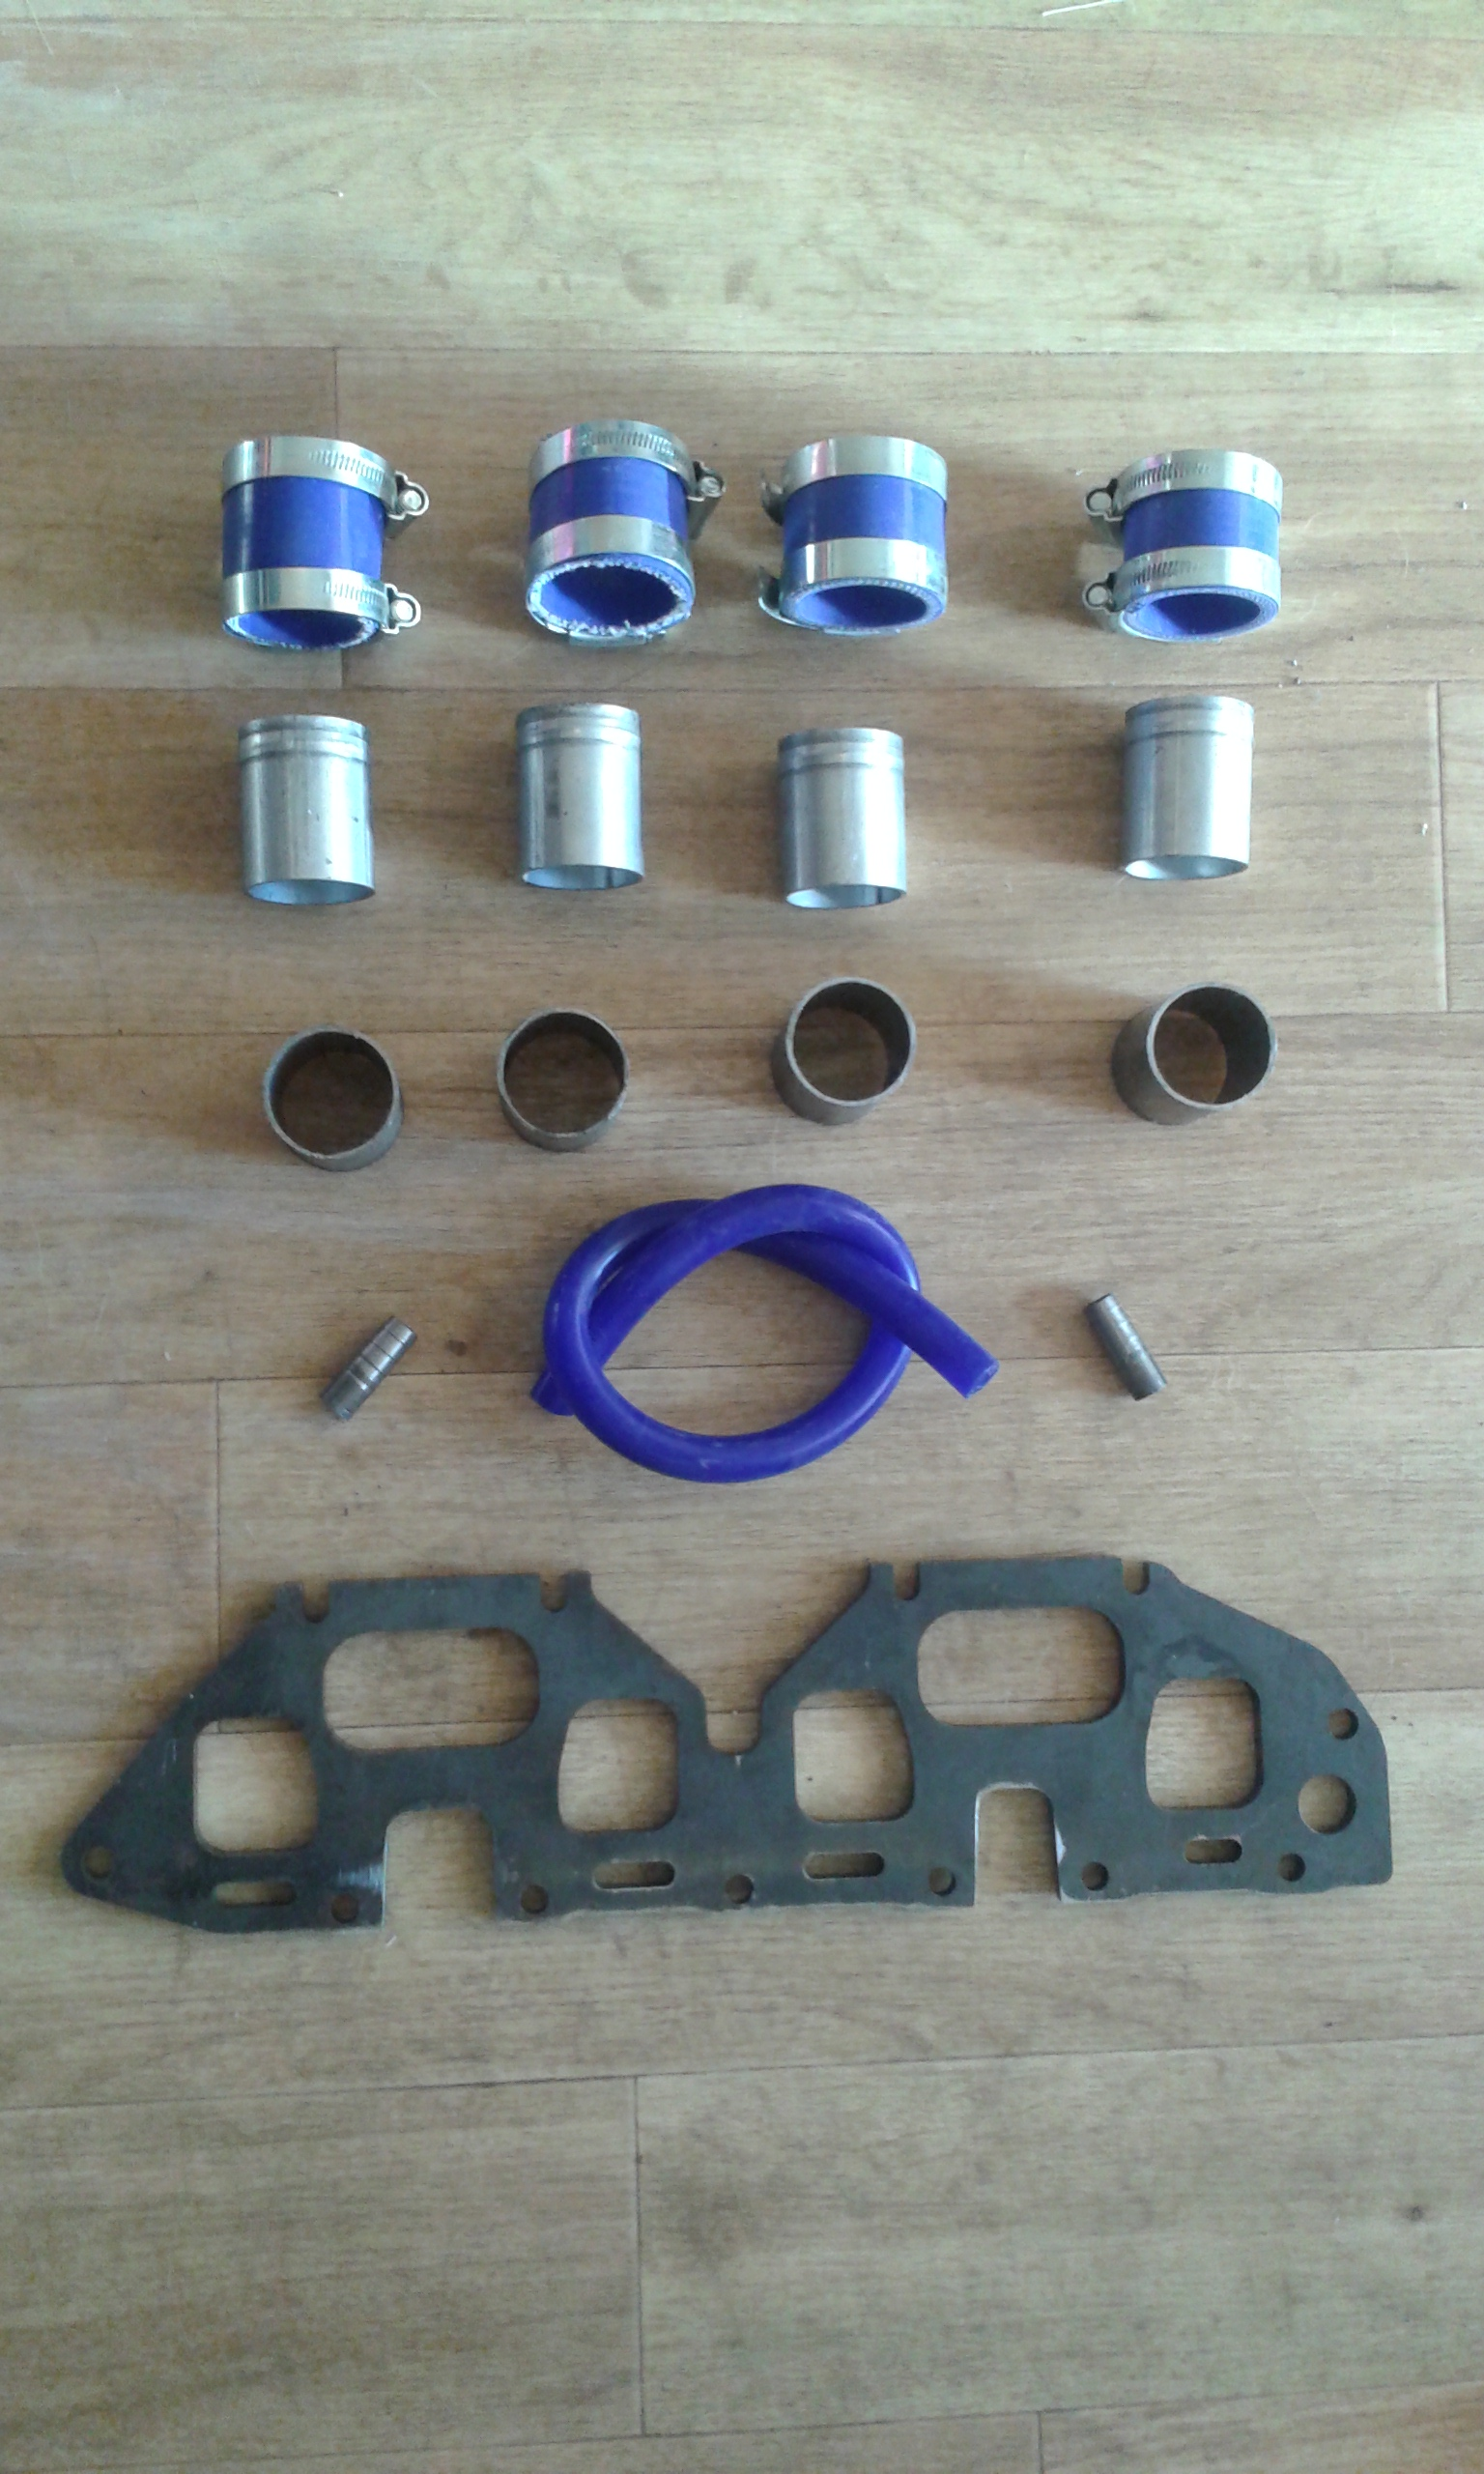 Inlet manifold kits for most popular engines